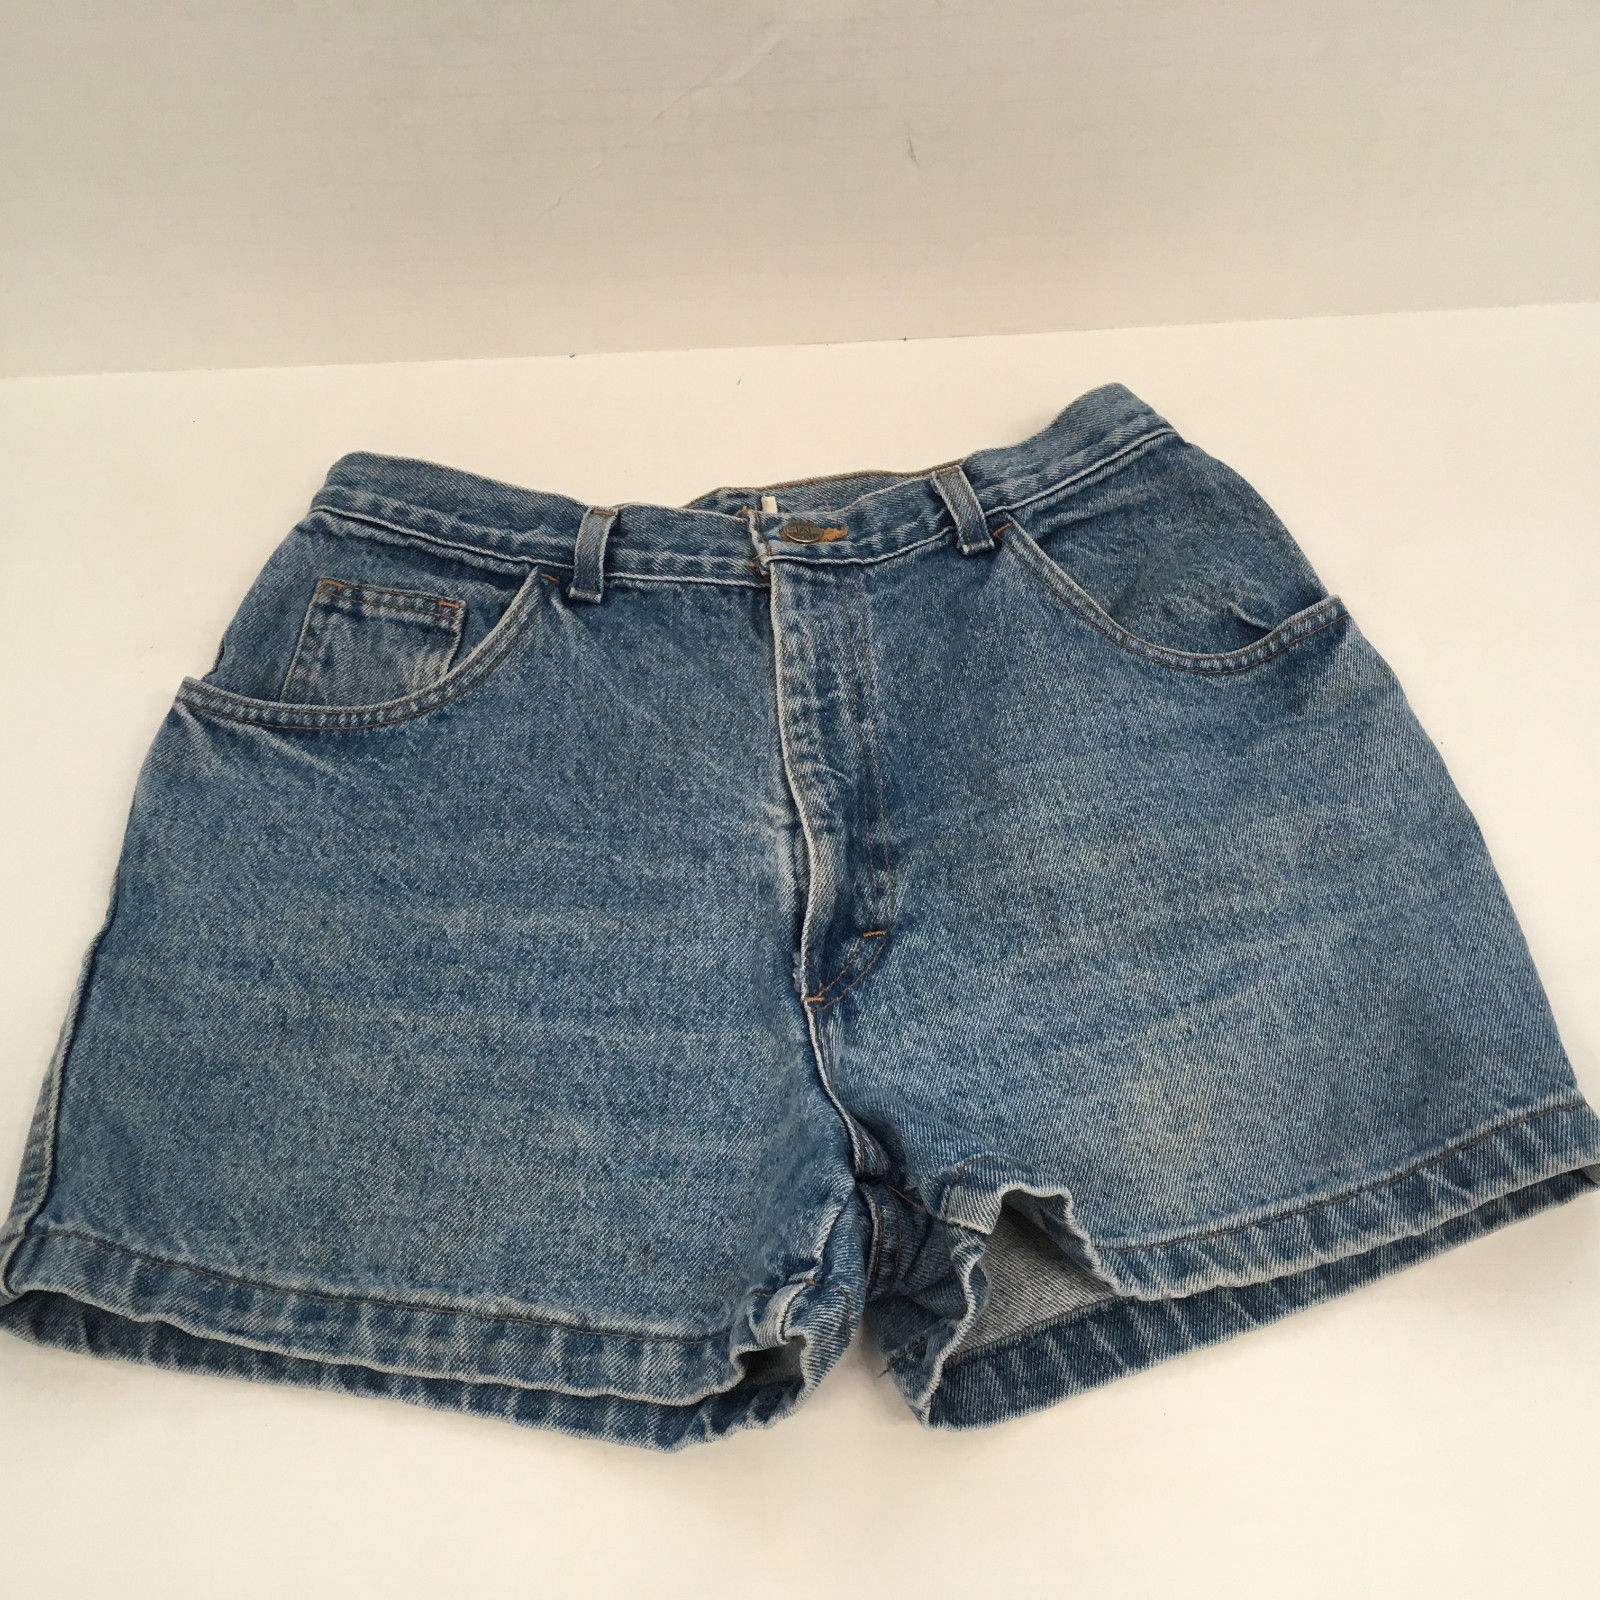 vintage Arizona jean co. high waisted short shorts blue jean - $9.89